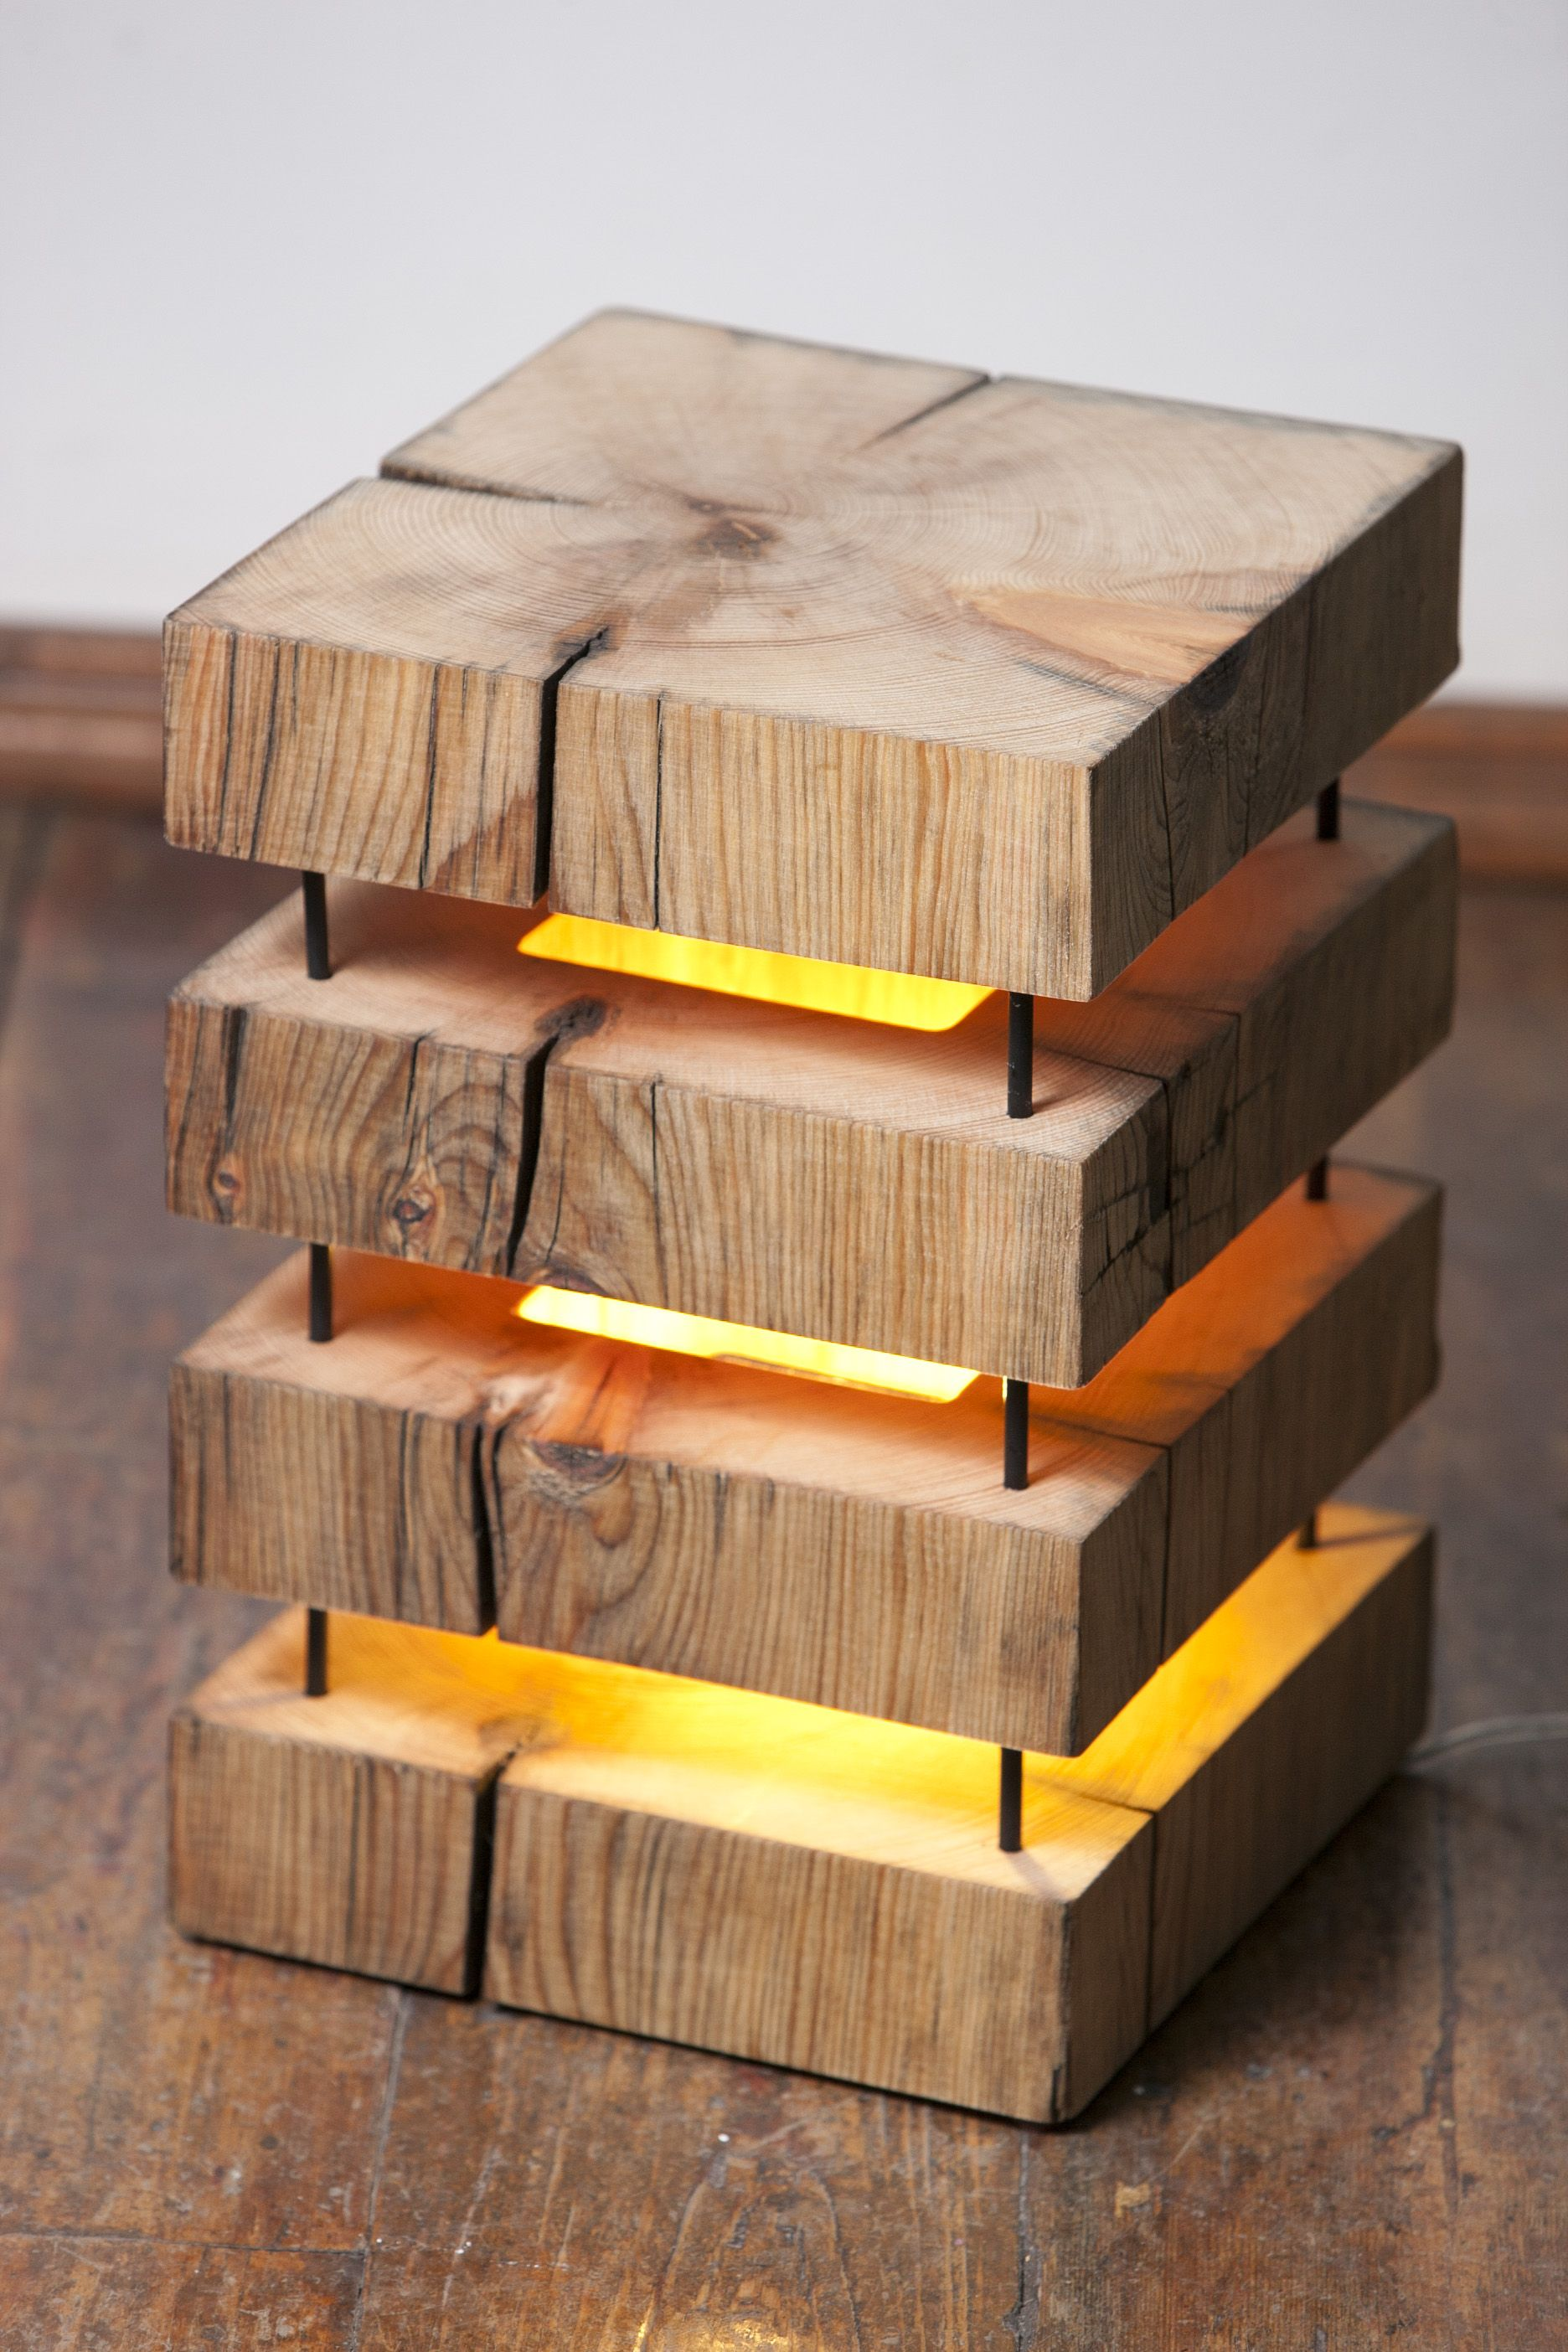 Made With Hardwood Solids With Cherry Veneers And Walnut: Mood Lamp Made From 250x250 Mm Old Cedar Beam.